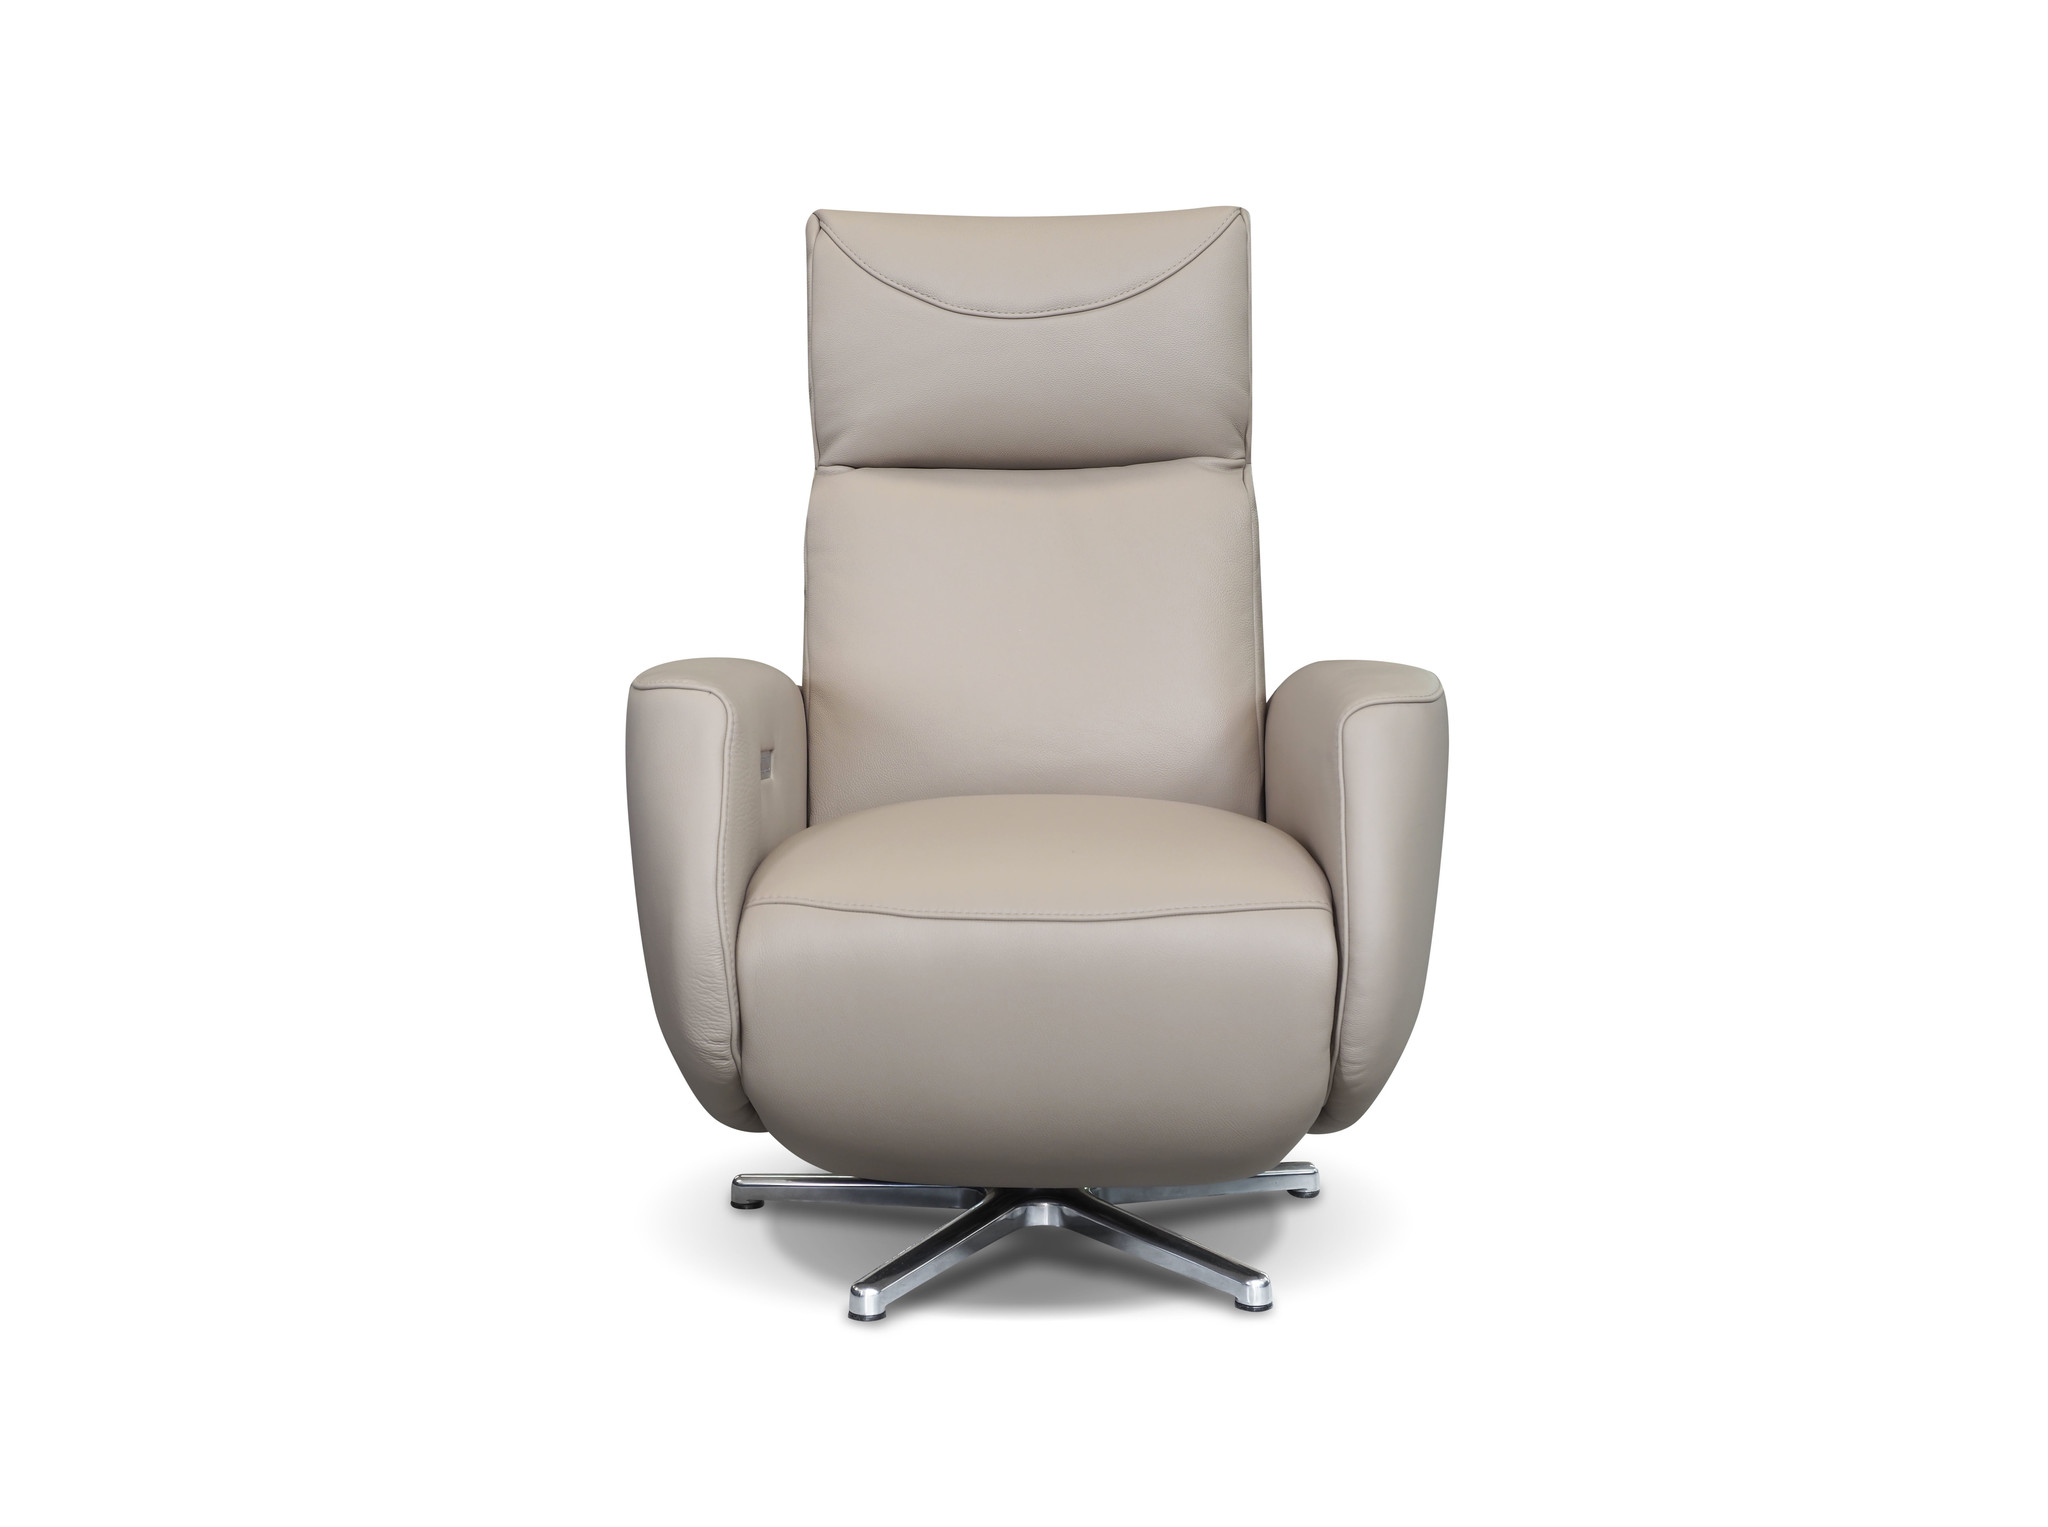 Lincoln PM Lounge Chair